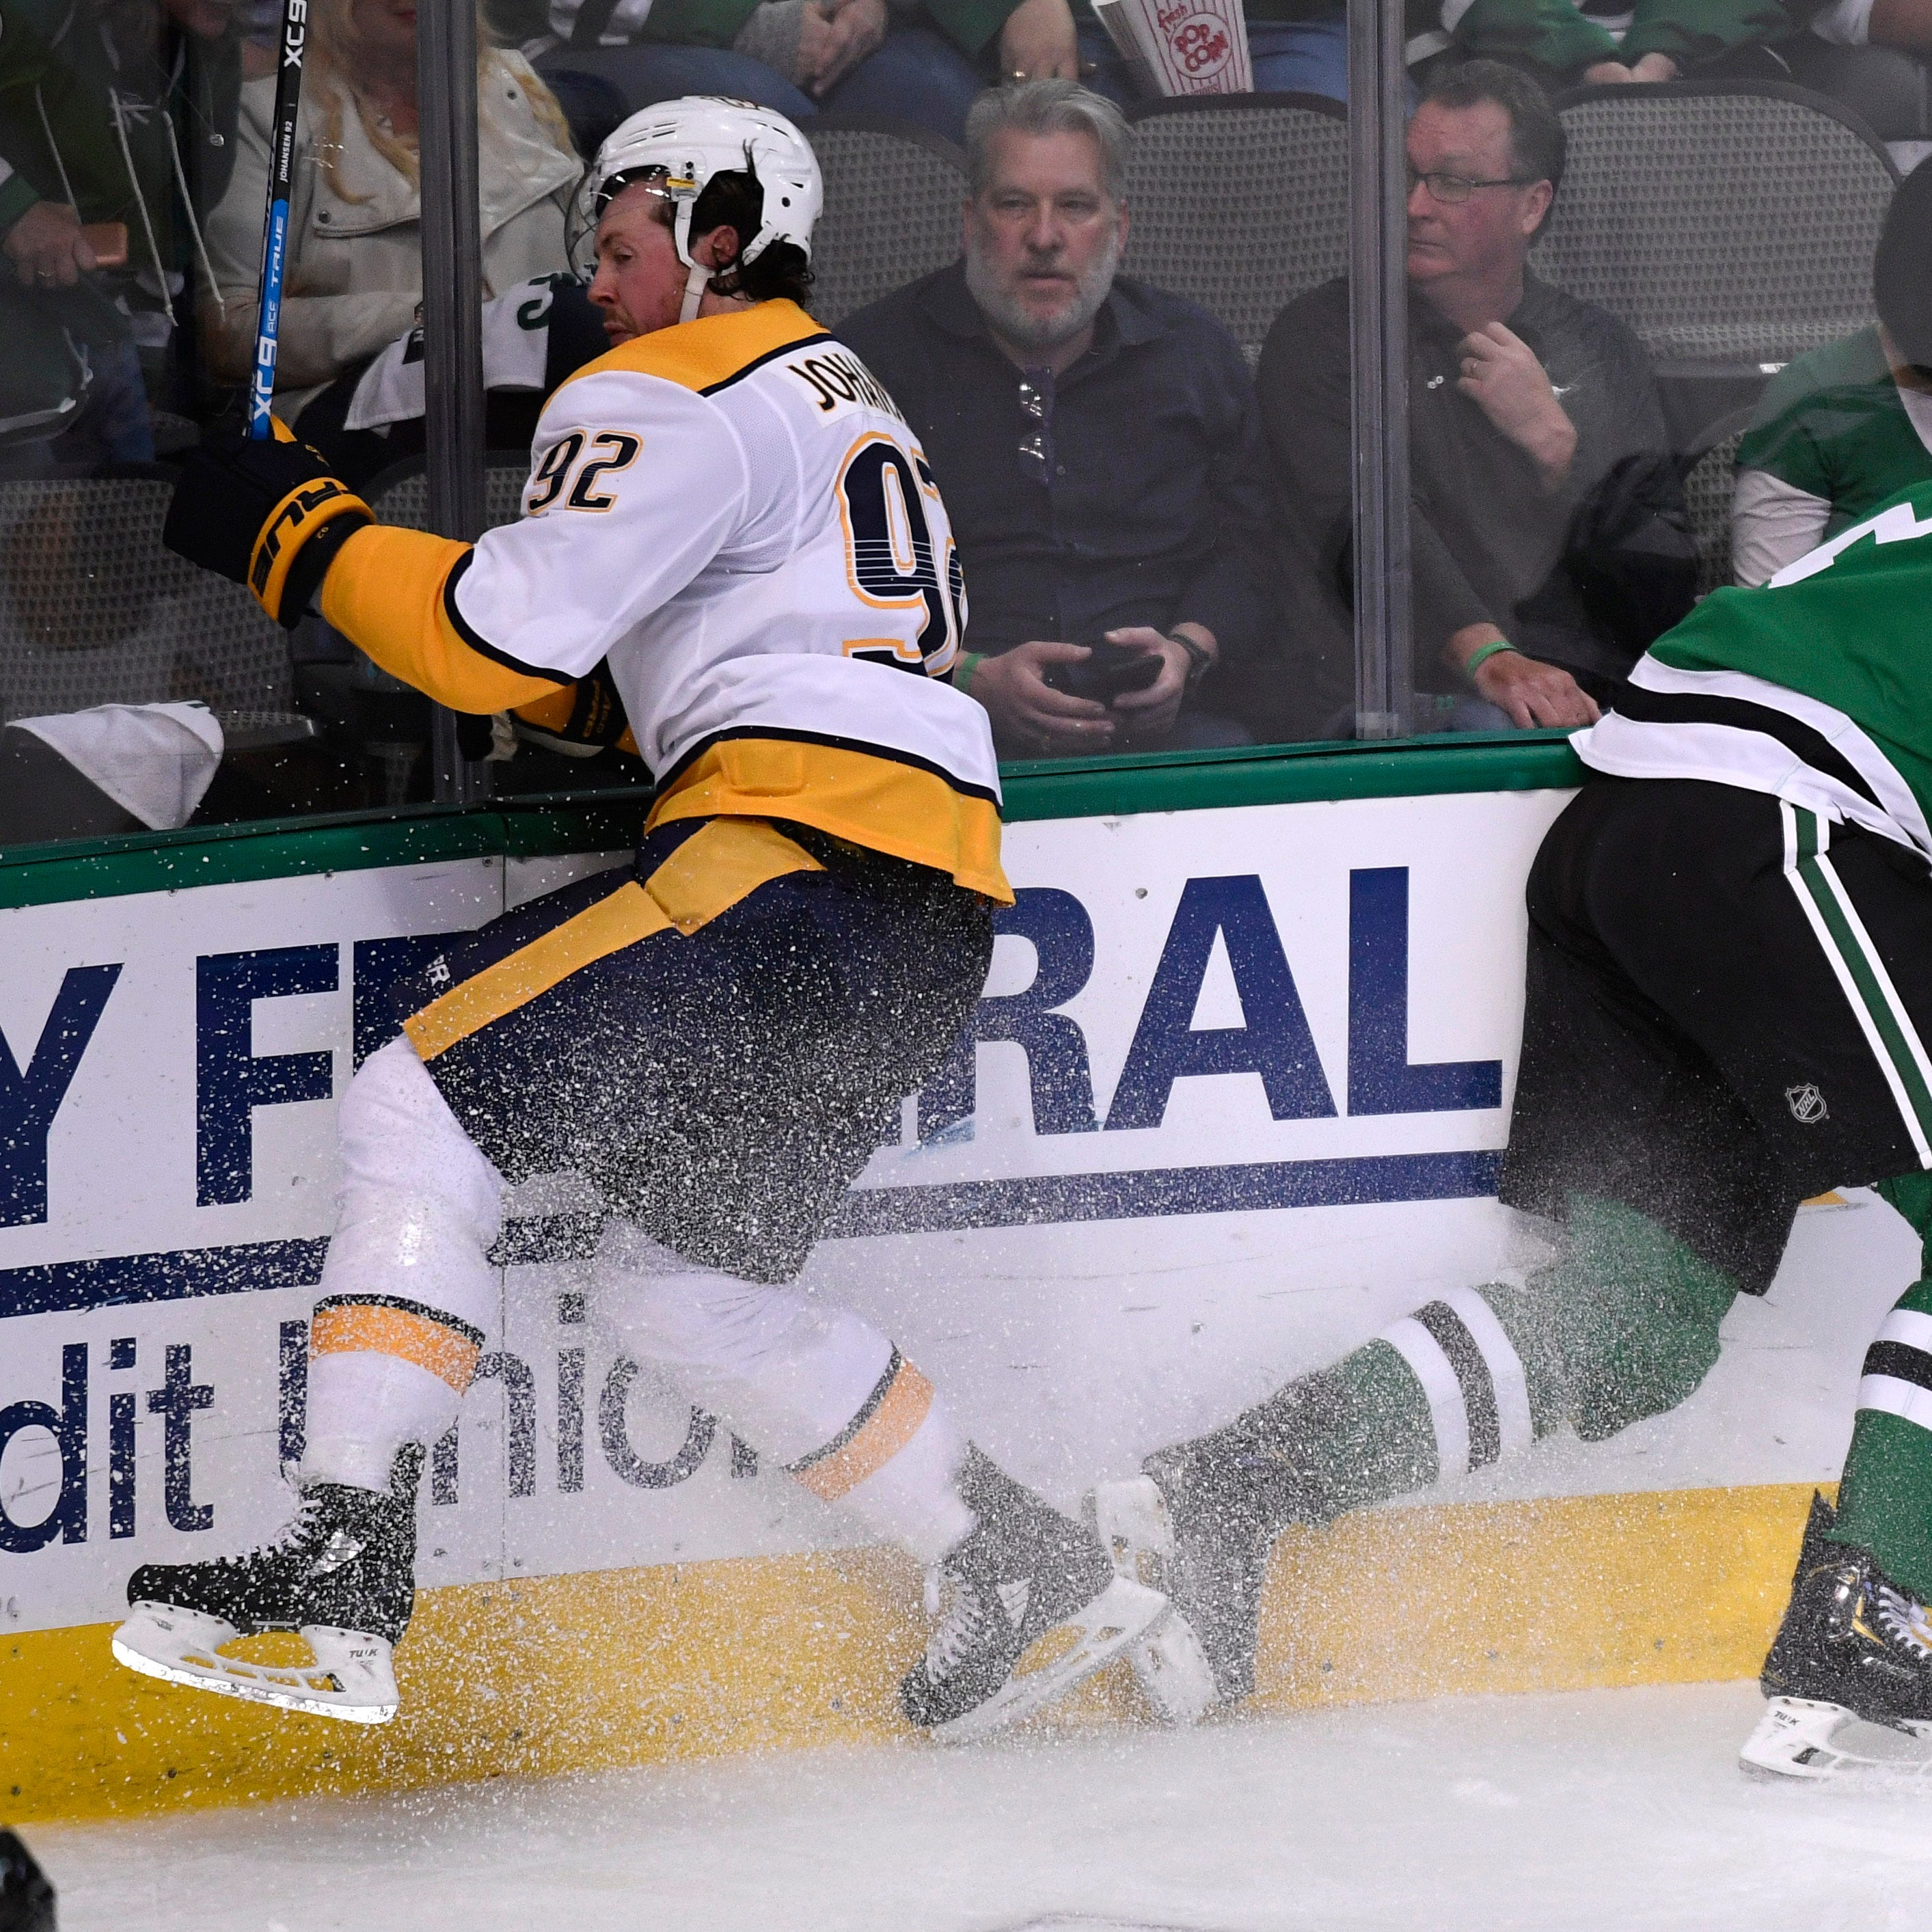 Not all his fault: Penalties, not Pekka Rinne, to blame for Predators' Game 4 loss to Stars